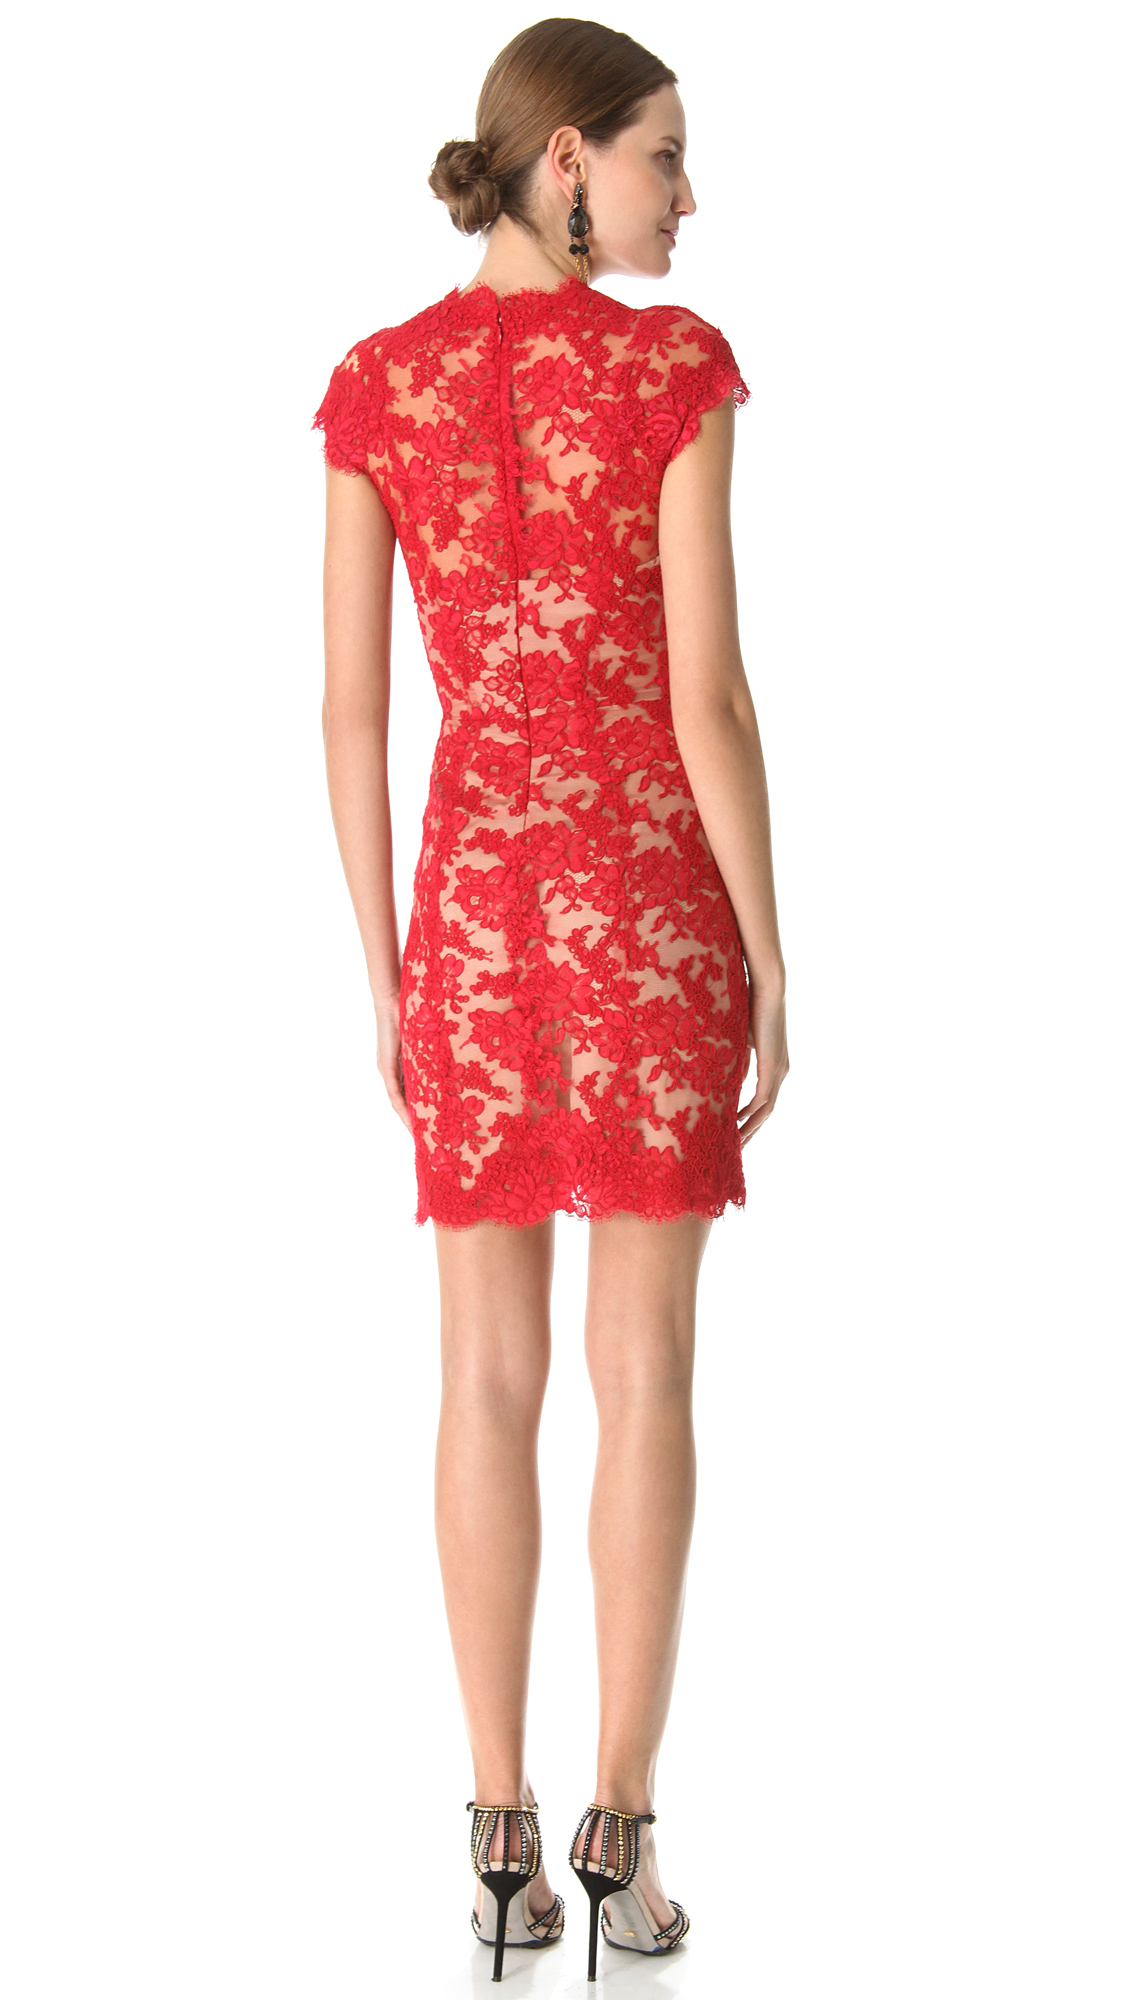 Lyst - Reem acra Lace Cocktail Dress in Red